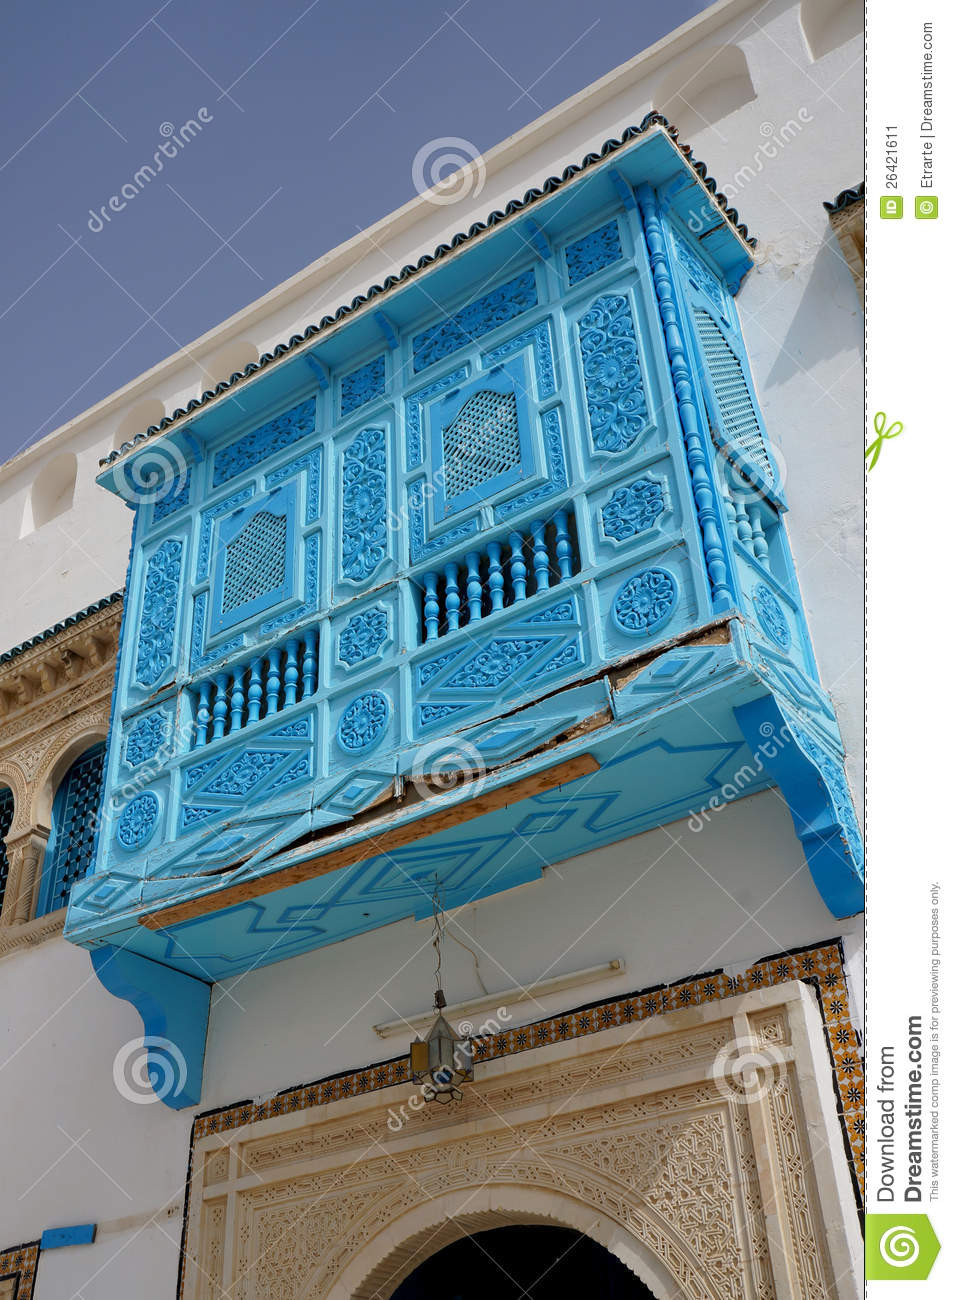 Architecture tunisienne traditionnelle image stock image for Architecture tunisienne maison